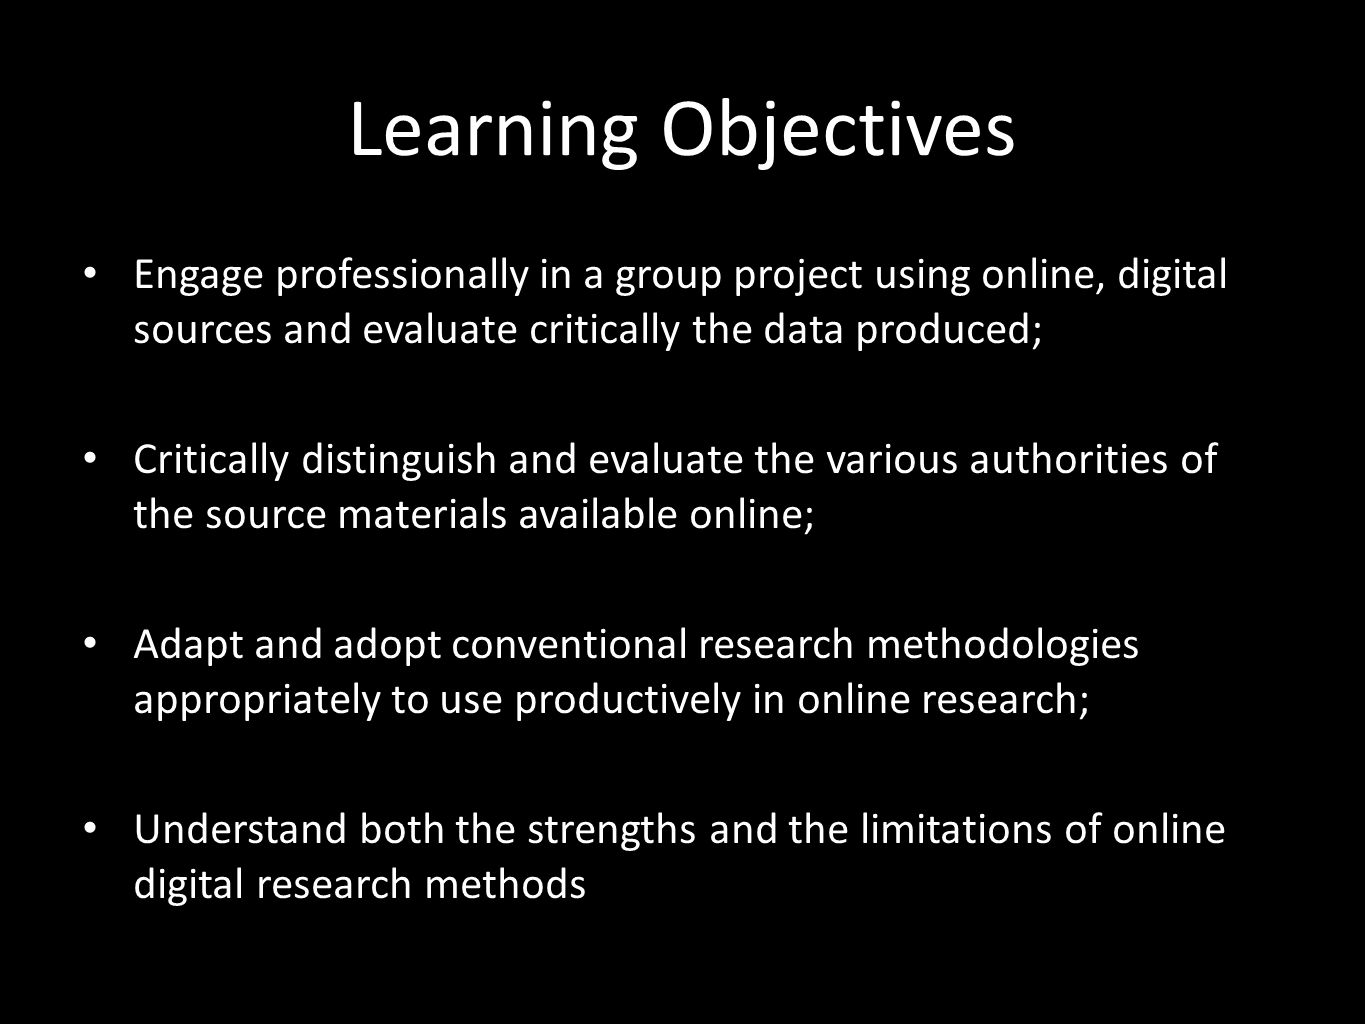 Learning Objectives Engage professionally in a group project using online, digital sources and evaluate critically the data produced; Critically distinguish and evaluate the various authorities of the source materials available online; Adapt and adopt conventional research methodologies appropriately to use productively in online research; Understand both the strengths and the limitations of online digital research methods